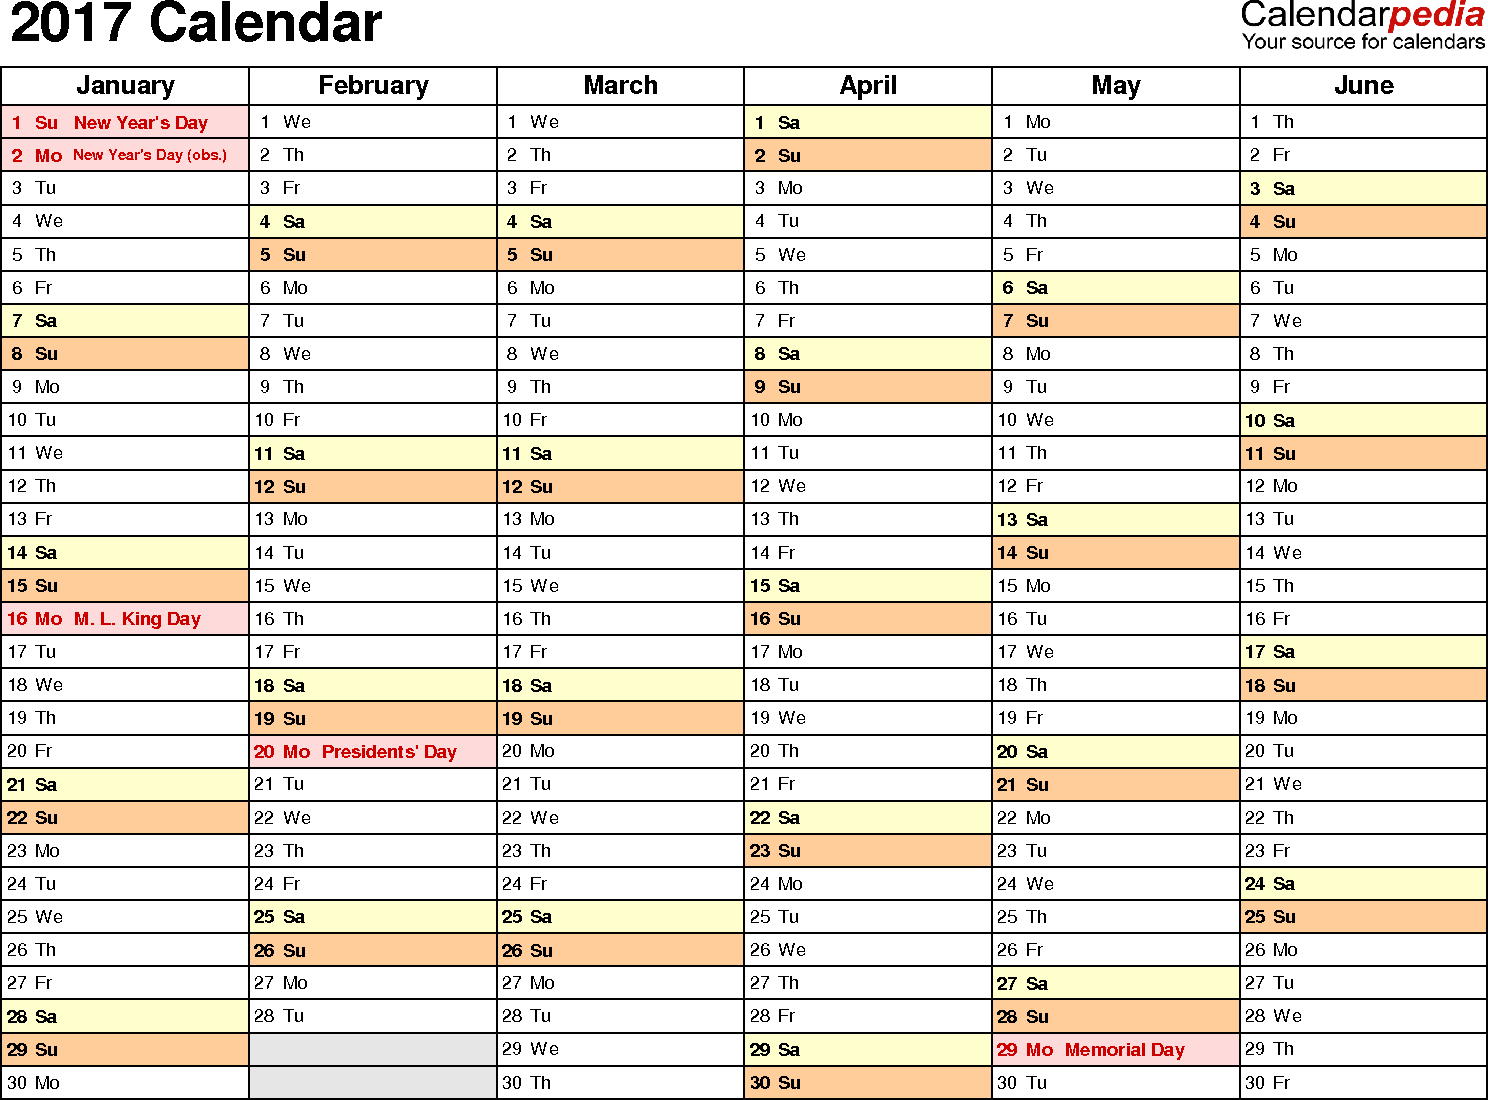 Ediblewildsus  Pretty  Calendar  Download  Free Printable Excel Templates Xls With Magnificent Template   Calendar For Excel Months Horizontally  Pages Landscape Orientation With Easy On The Eye How To Combine Excel Sheets Also How To Highlight Text In Excel In Addition Change Formula Excel And Excel Relative Cell Reference As Well As Formula In Excel Additionally Excel Visual Basic From Calendarpediacom With Ediblewildsus  Magnificent  Calendar  Download  Free Printable Excel Templates Xls With Easy On The Eye Template   Calendar For Excel Months Horizontally  Pages Landscape Orientation And Pretty How To Combine Excel Sheets Also How To Highlight Text In Excel In Addition Change Formula Excel From Calendarpediacom